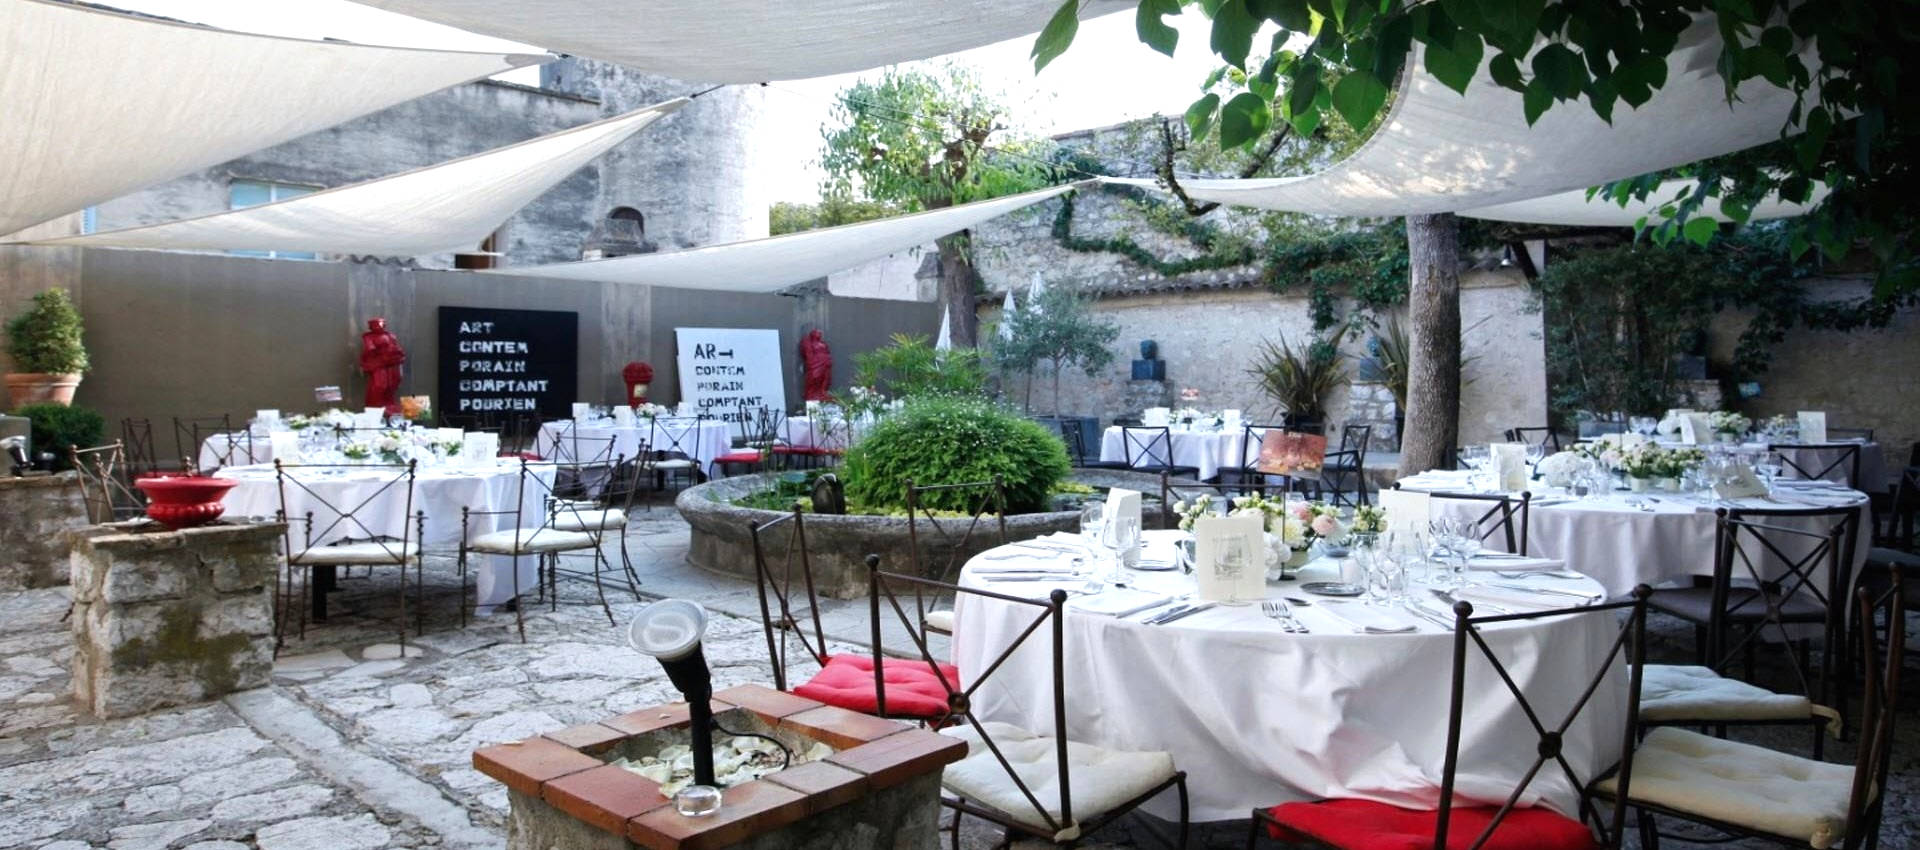 restaurant Abbaye 541 - Colle/Loup